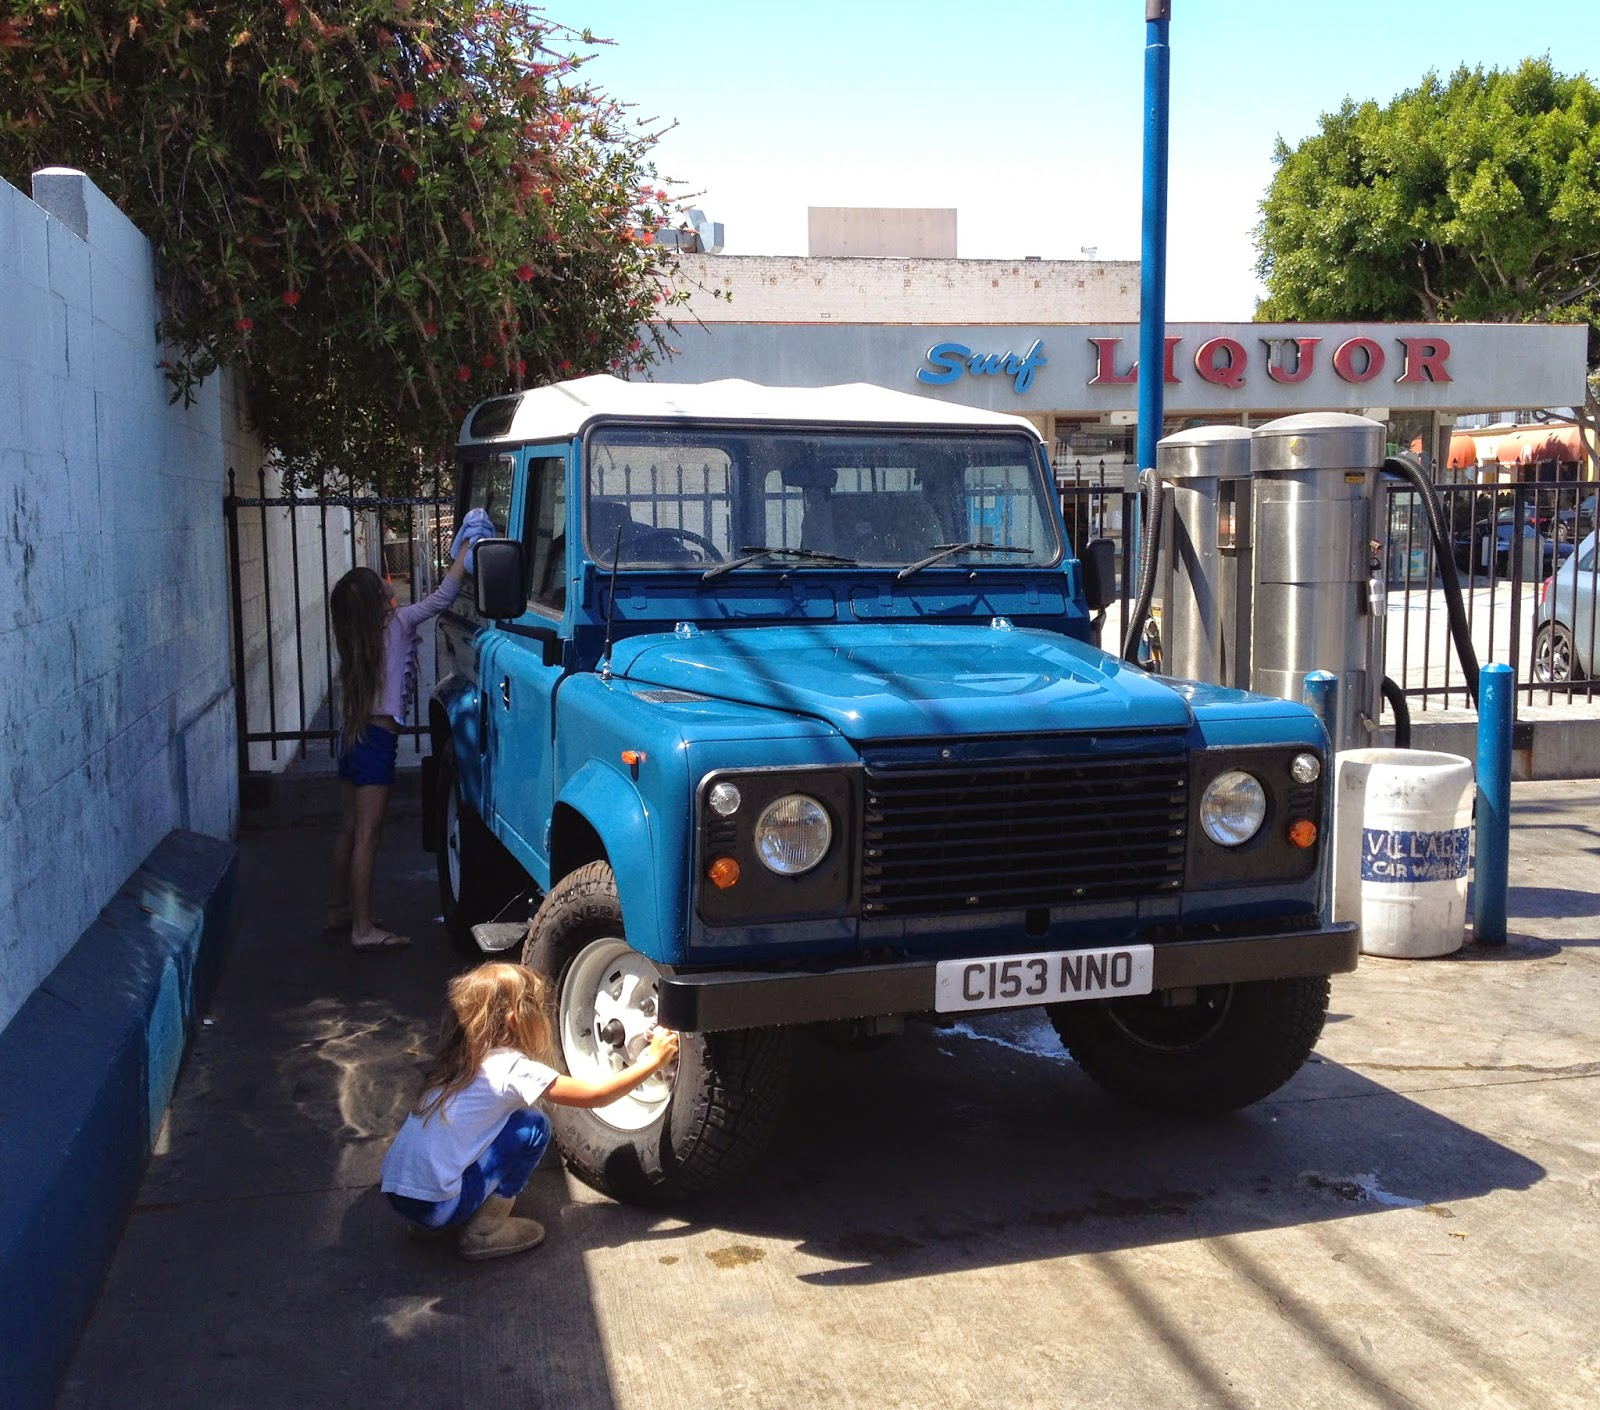 Bonfirebeachkids: FOR SALE: 1986 LAND ROVER D 90 $29K OBO